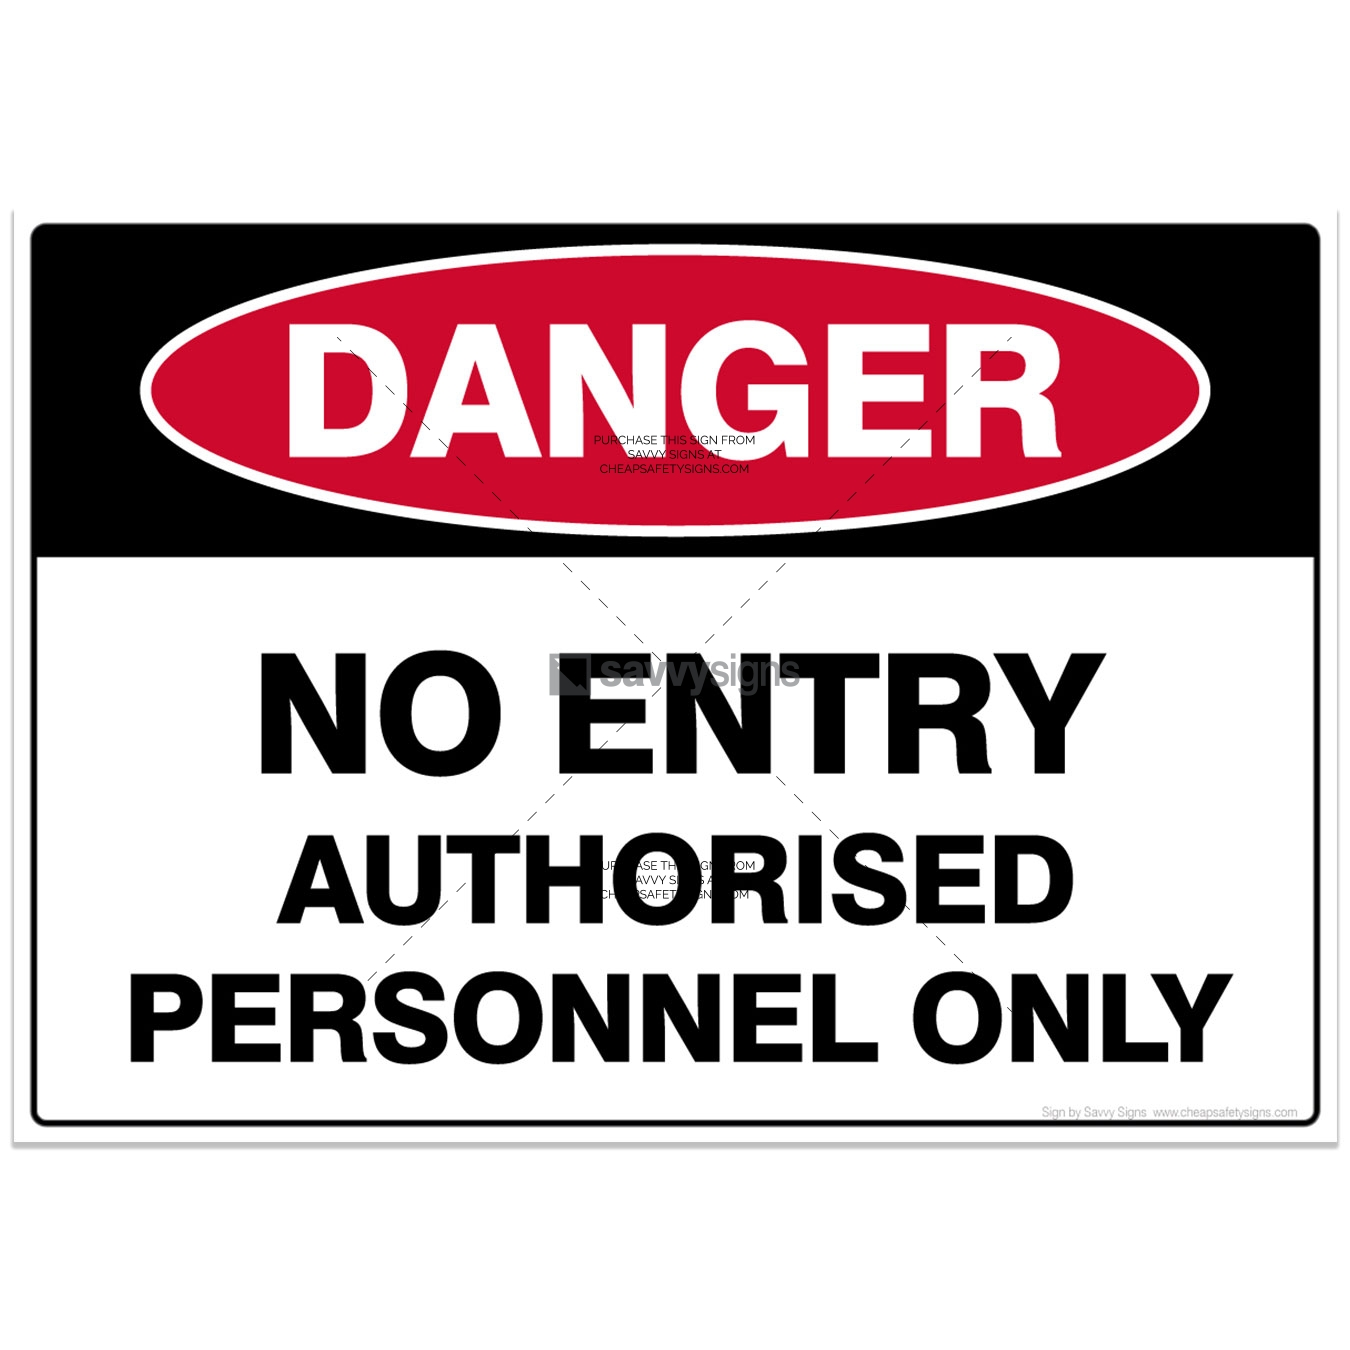 SSDAN3059-DANGER-Workplace-Safety-Signs_Savvy-Signs_v4.1